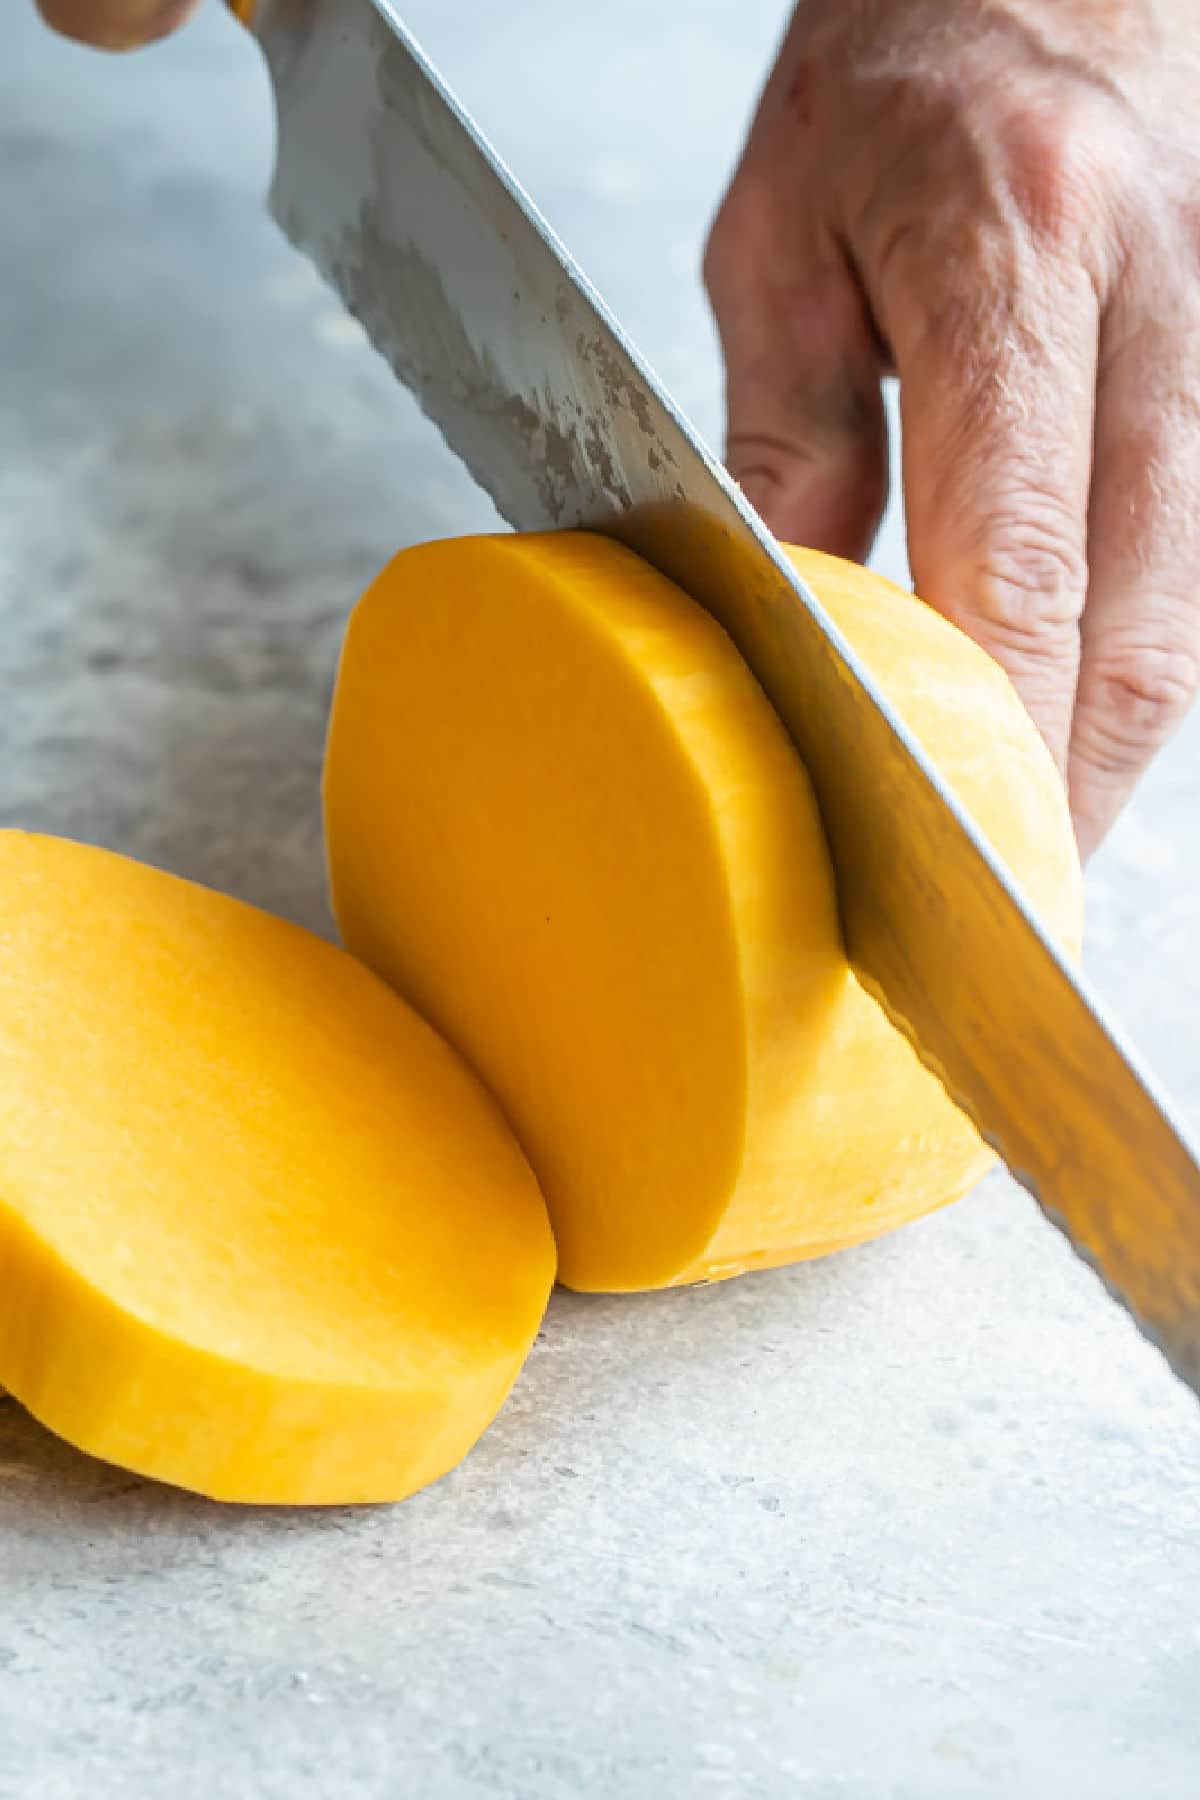 Peeled butternut squash being sliced into rounds.